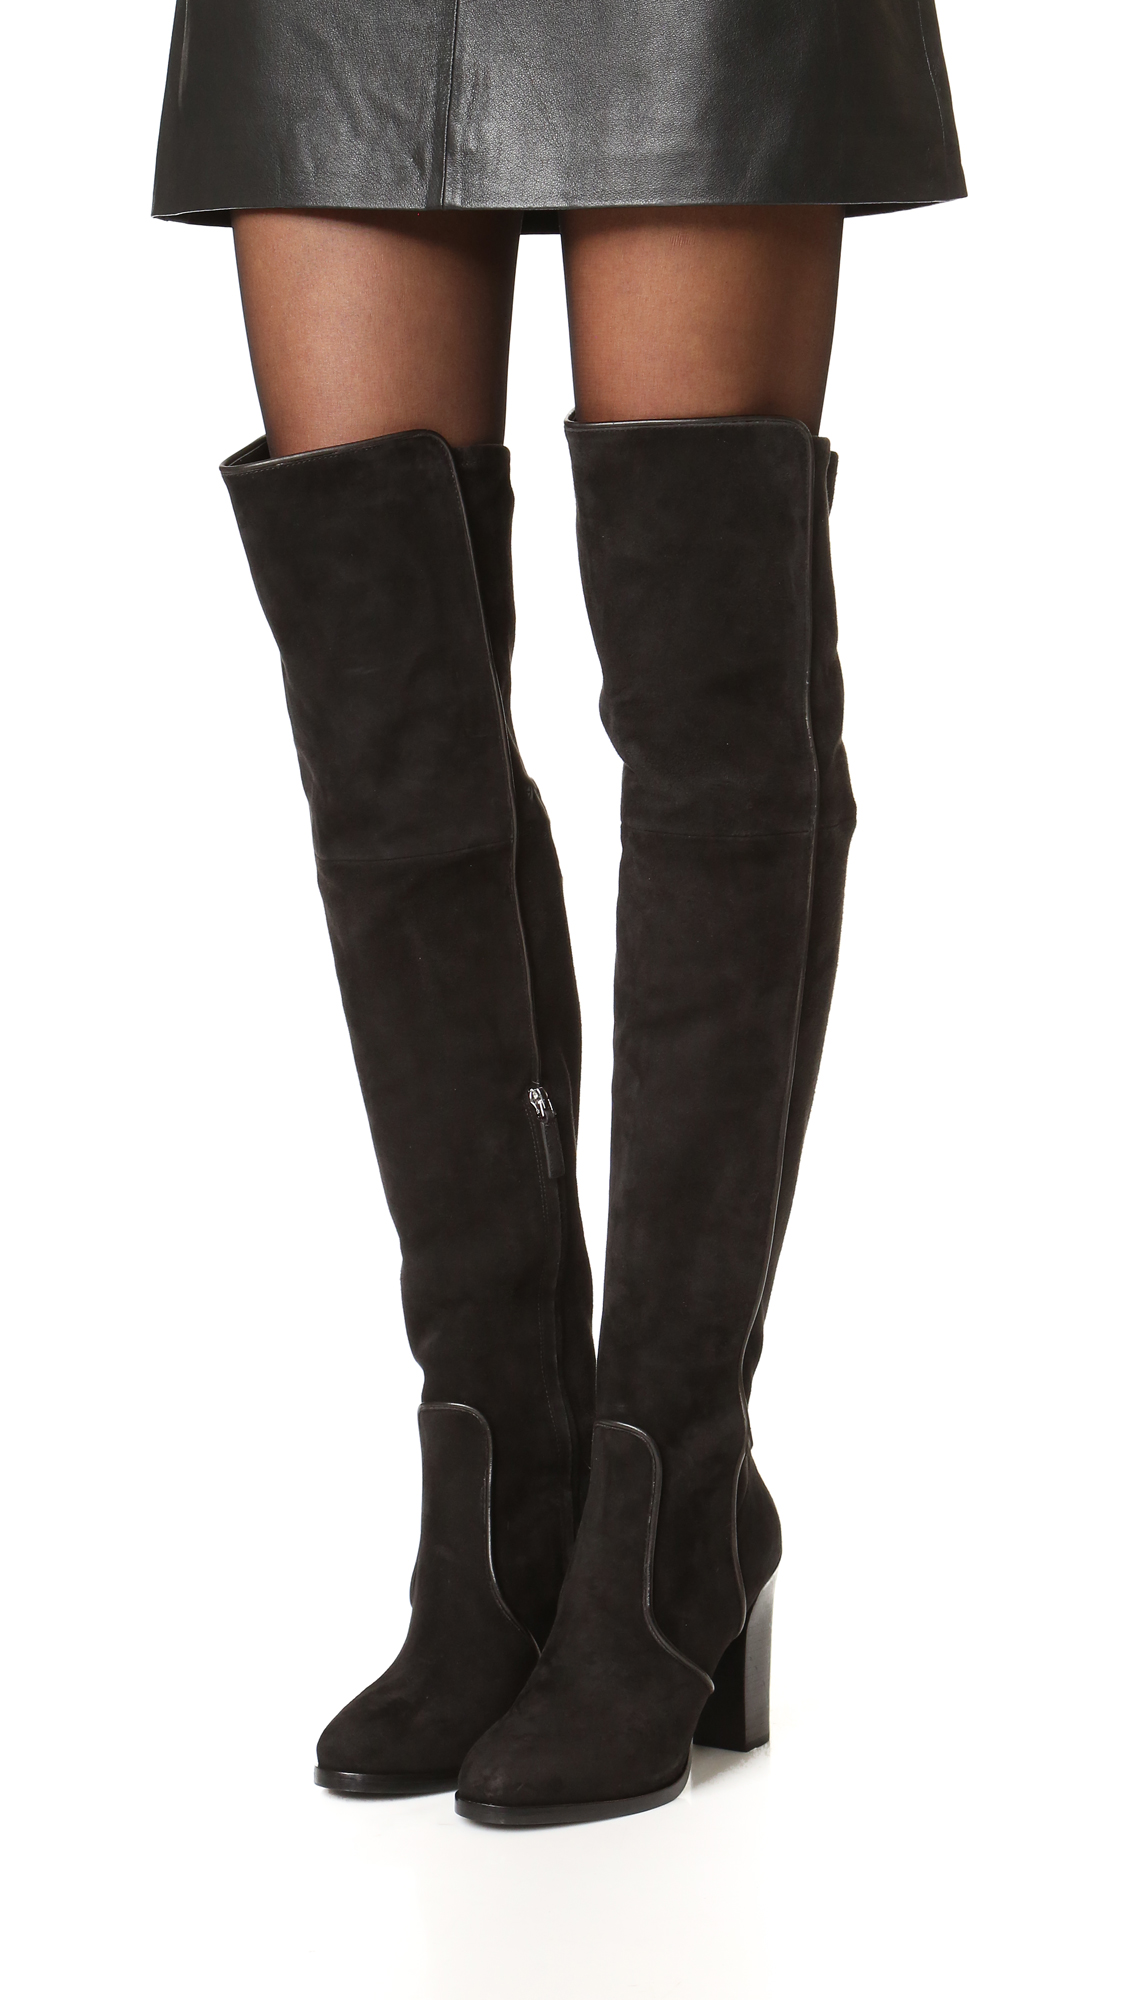 5663ac00235 Michael Kors Collection Cutler Over the Knee Boots